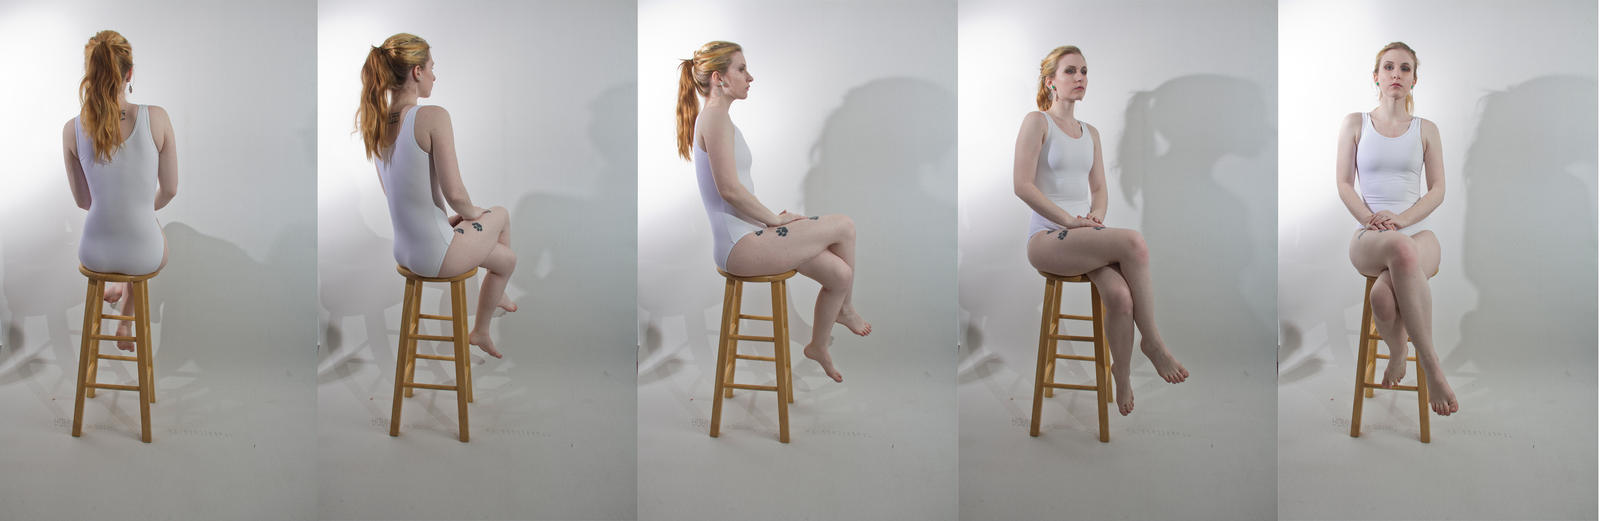 POSE BOOK - sitting down on Pinterest   122 Pins